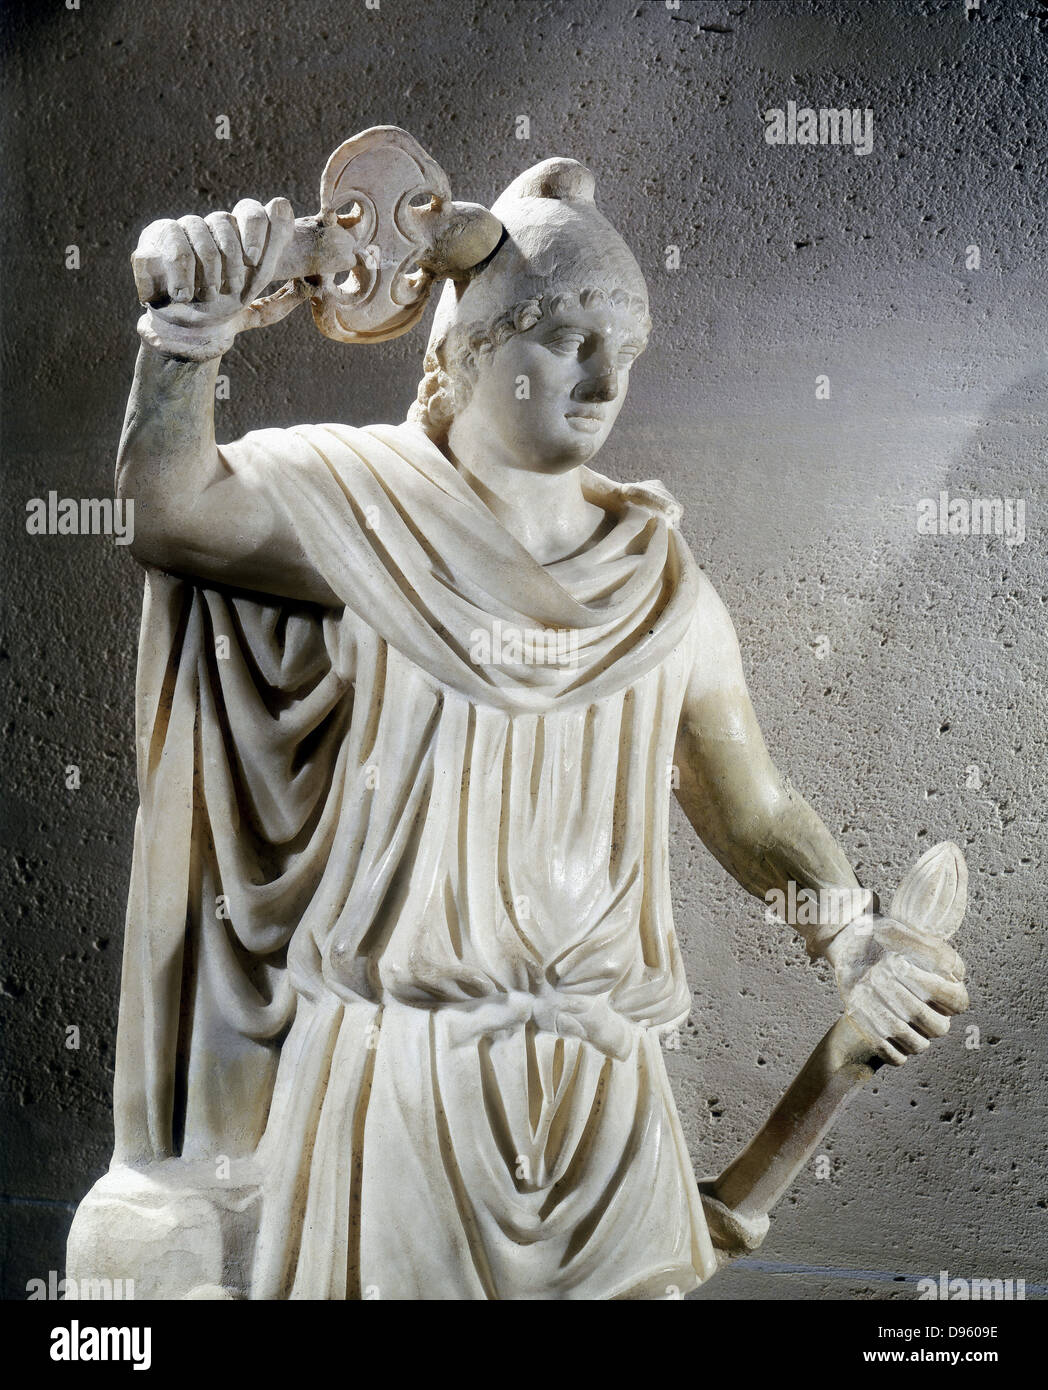 Statue of Mithras, ancient Persian god of light who was adopted into the Roman pantheon. Mithras is shown wearing Stock Photo